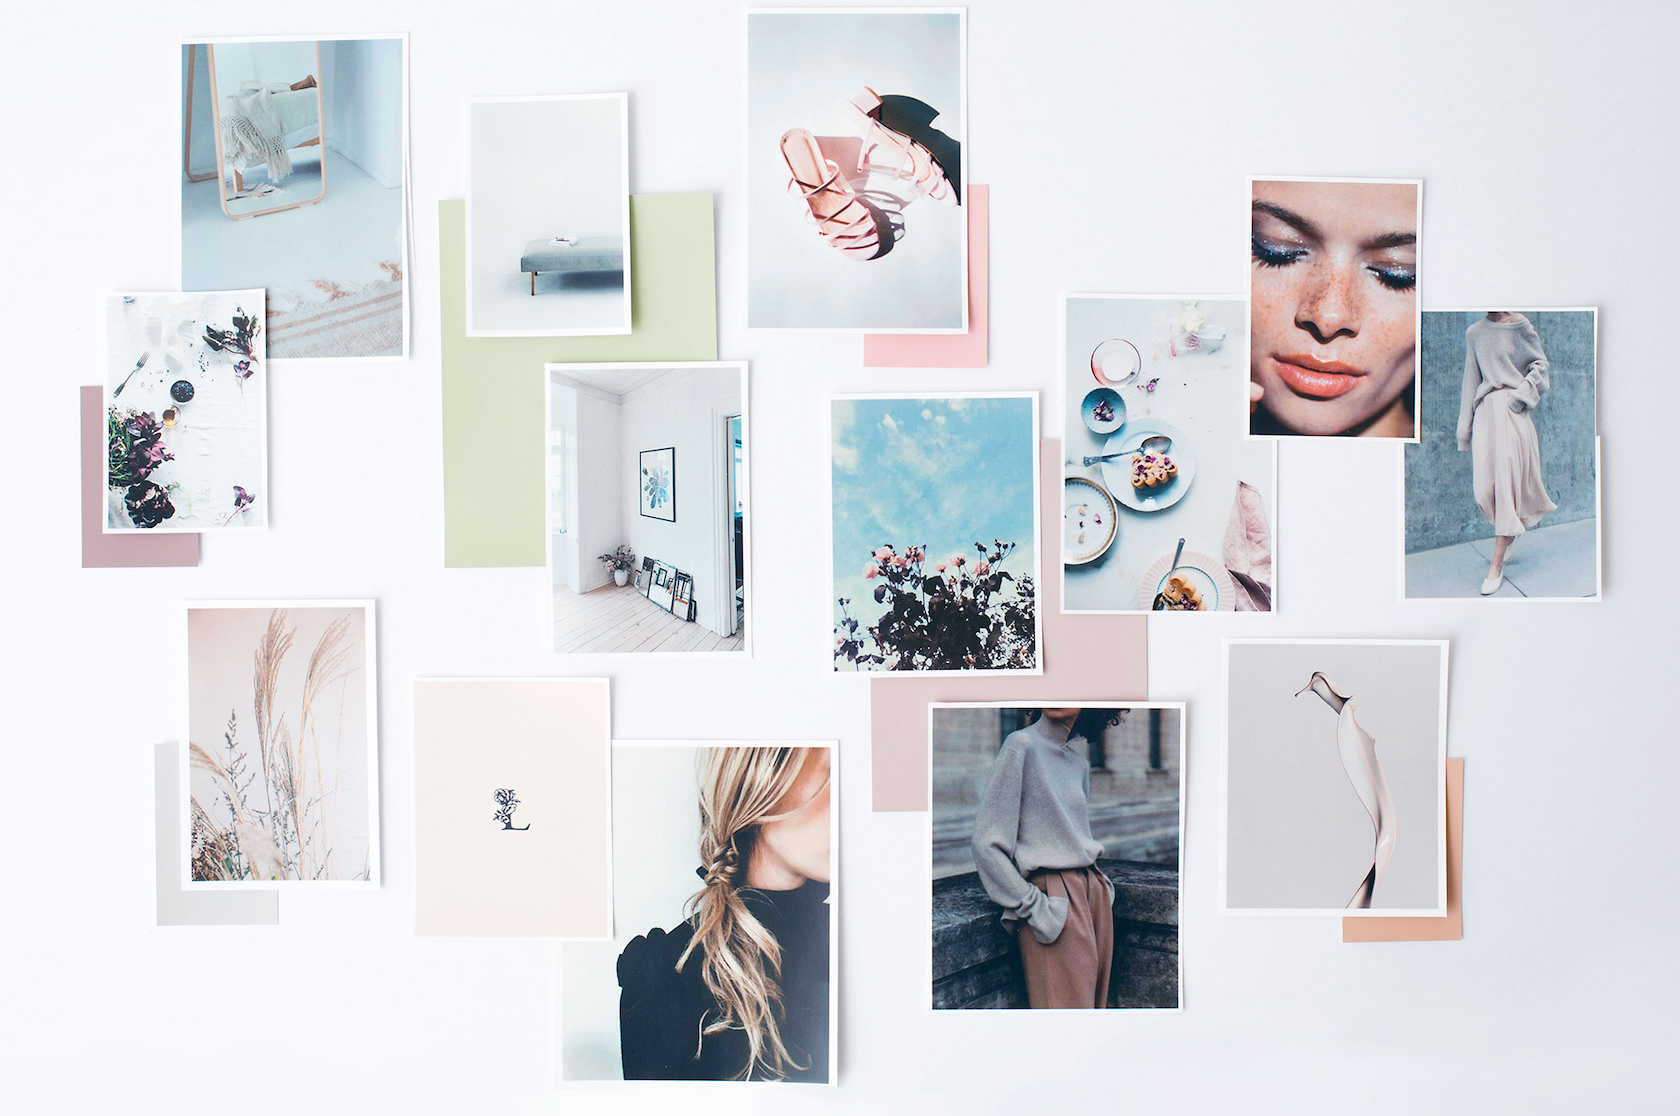 A beautiful physical mood board layout